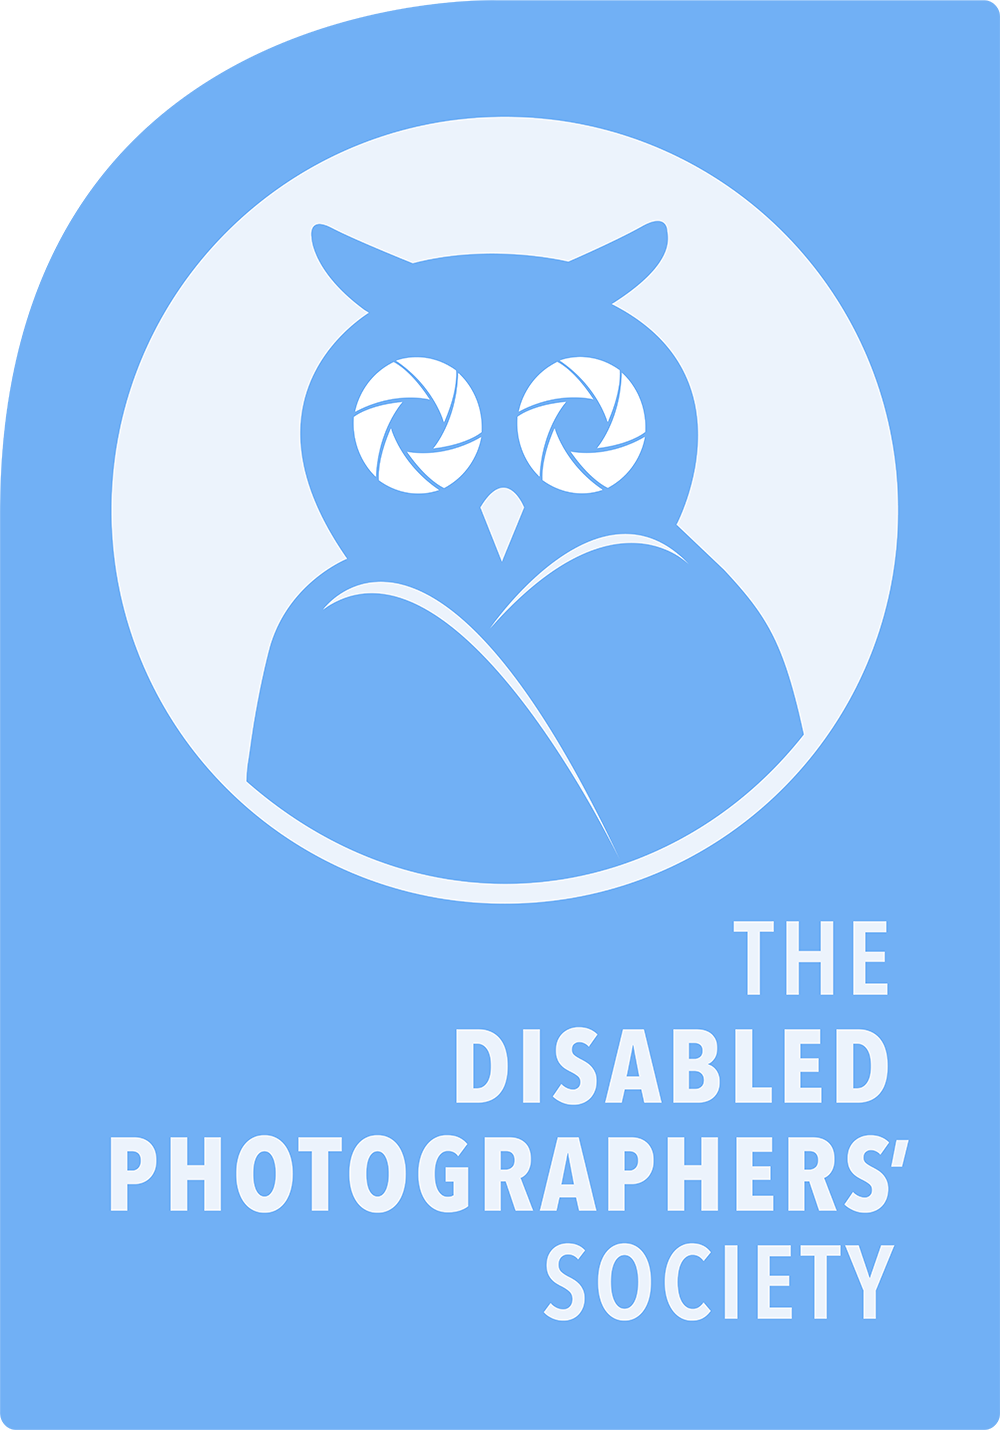 The Disabled Photographers' Society logo